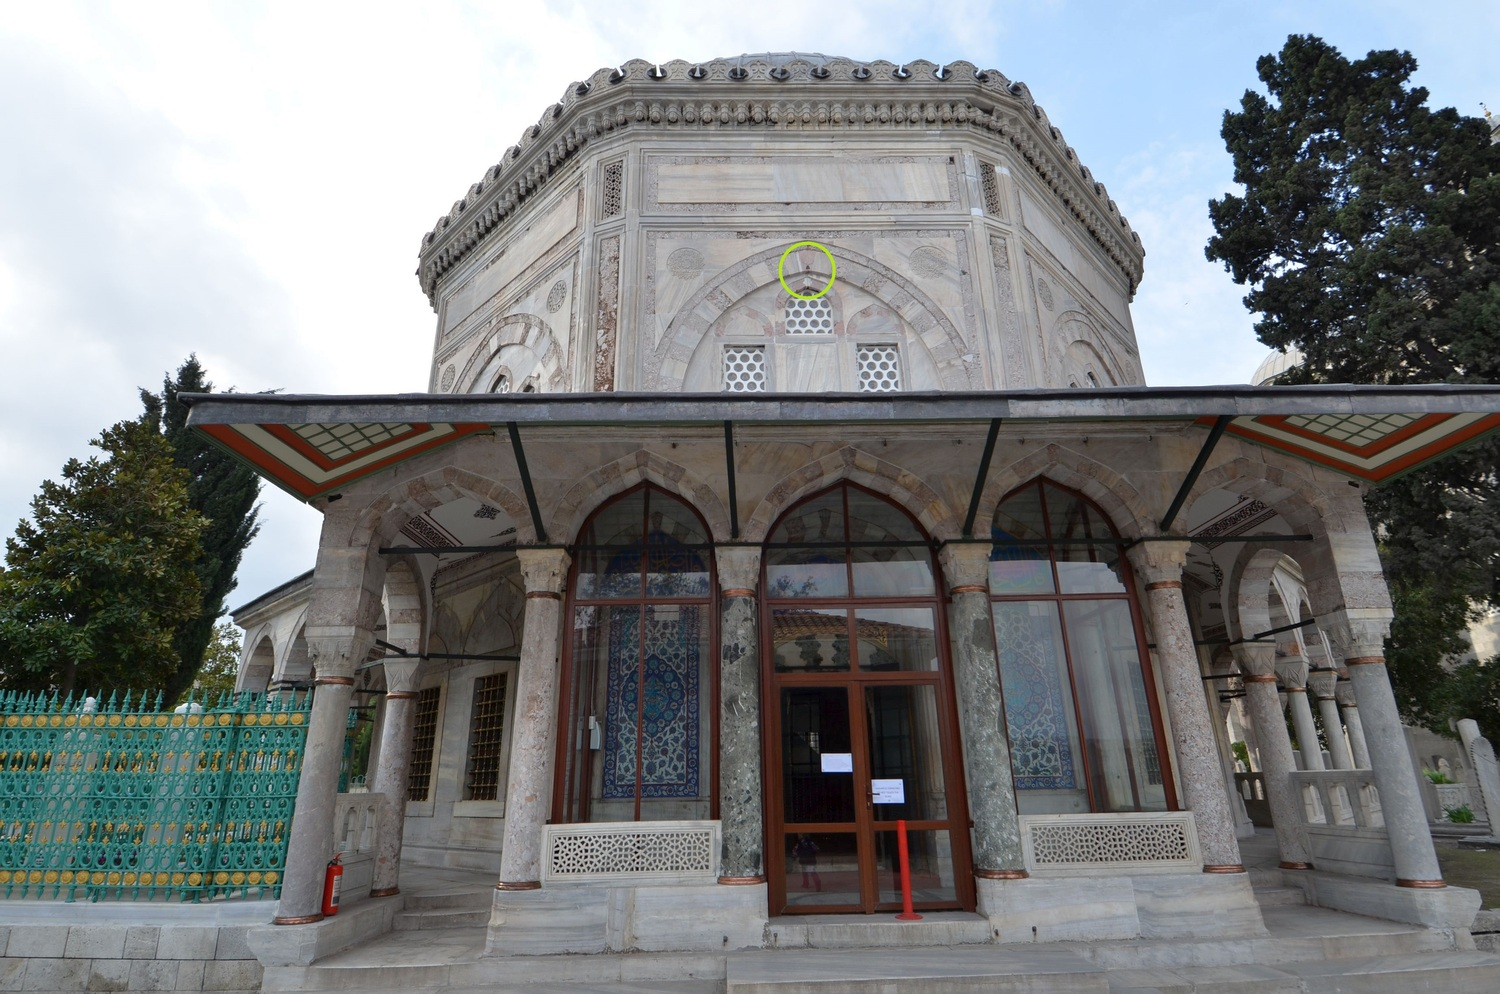 Mausoleum of Sultan Suleyman the Magnificent in Istanbul with the marked location of the Black Stone fragment